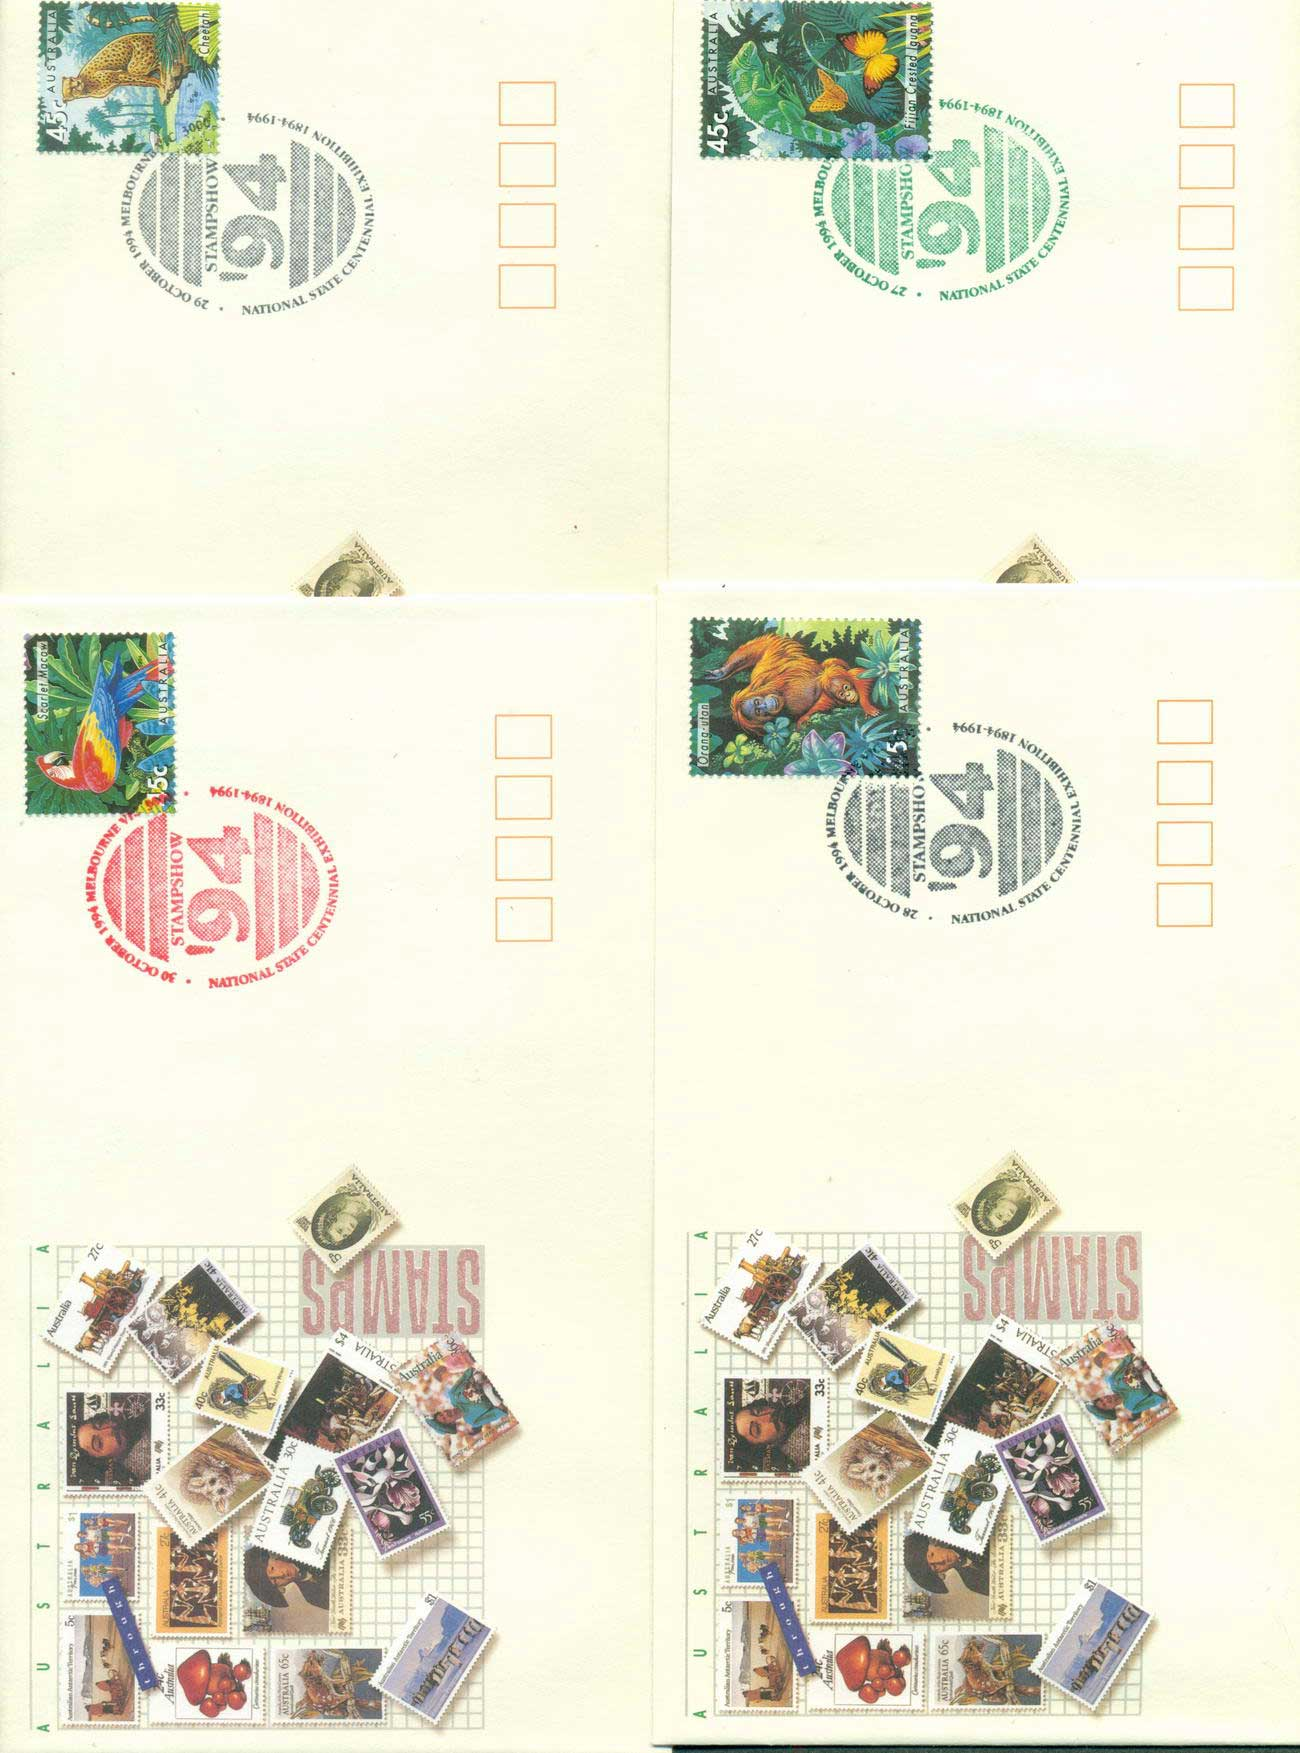 Australia 1994 National State Centennial Exhibition, Melbourne 4x FDC lot52478